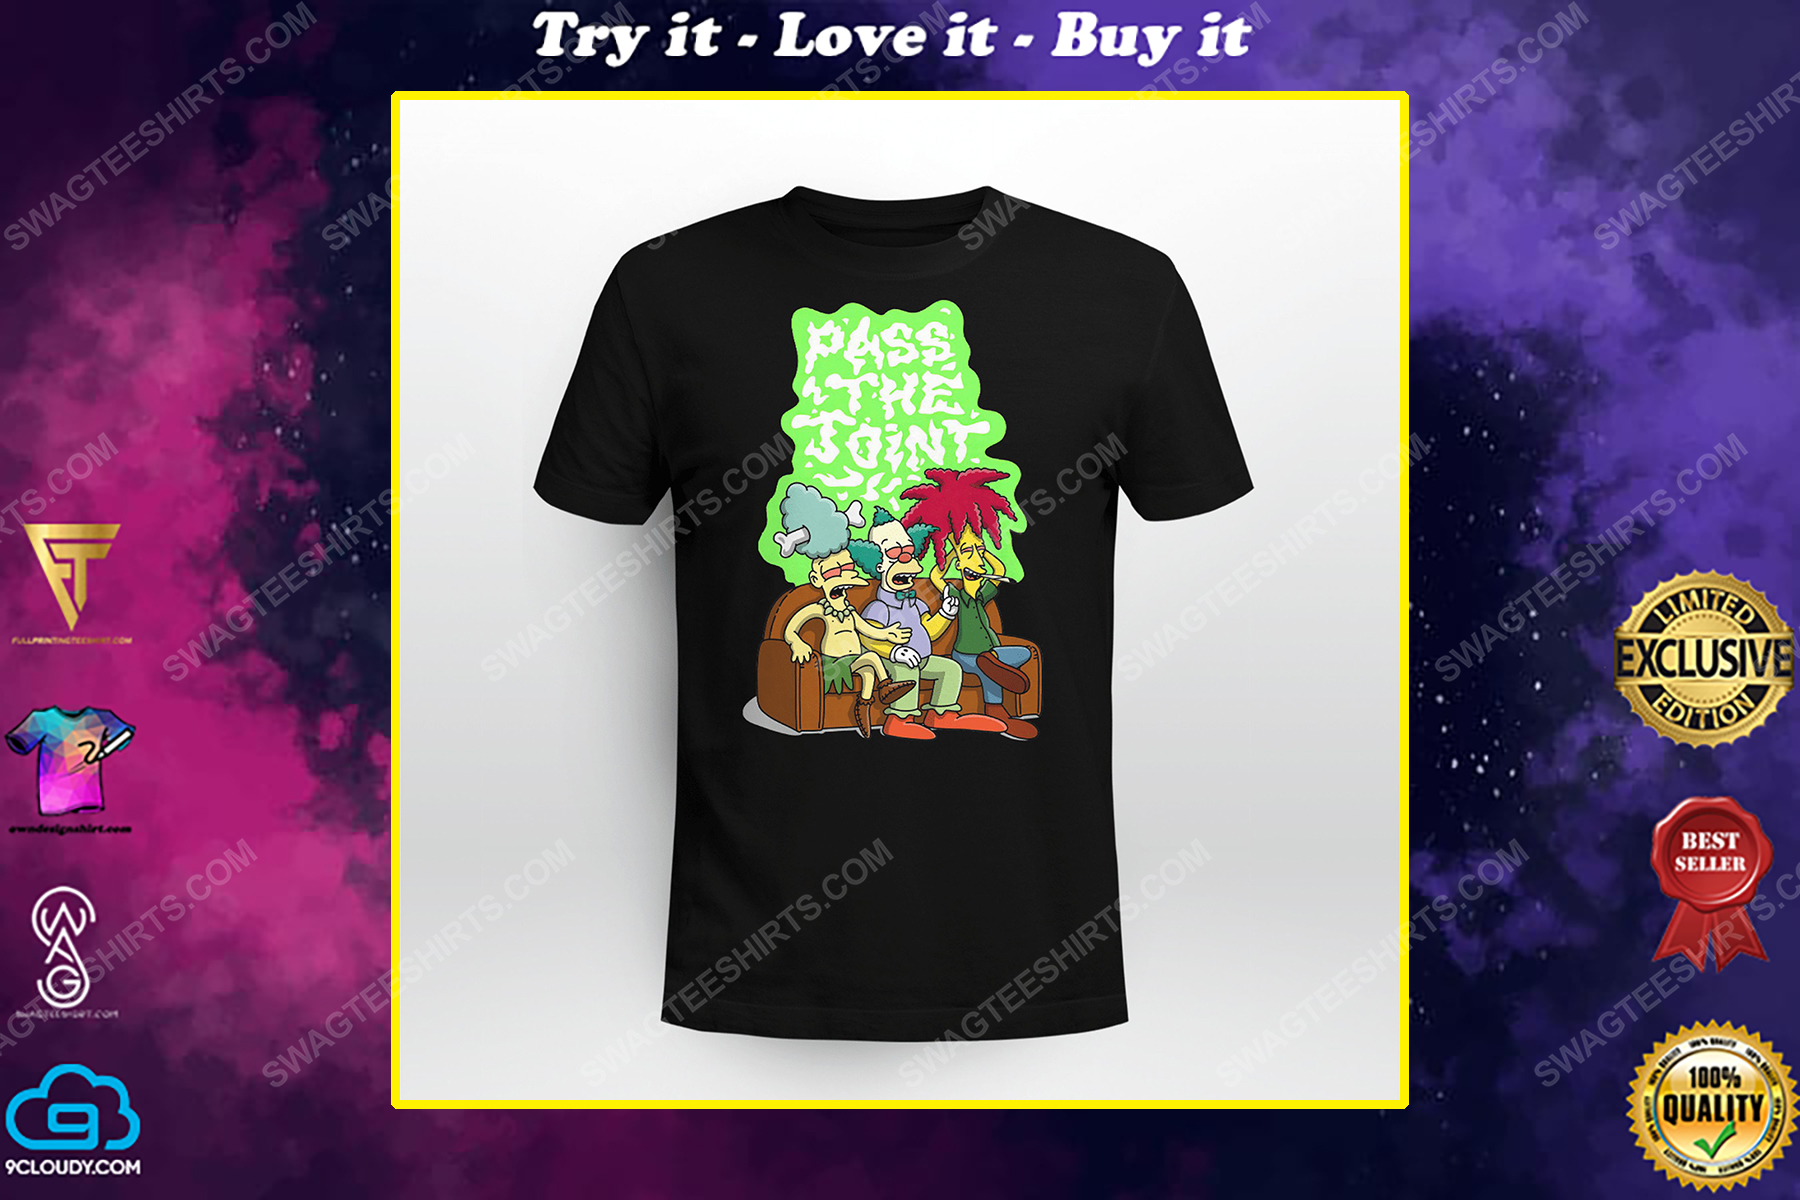 Pass the joint the simpsons tv show shirt